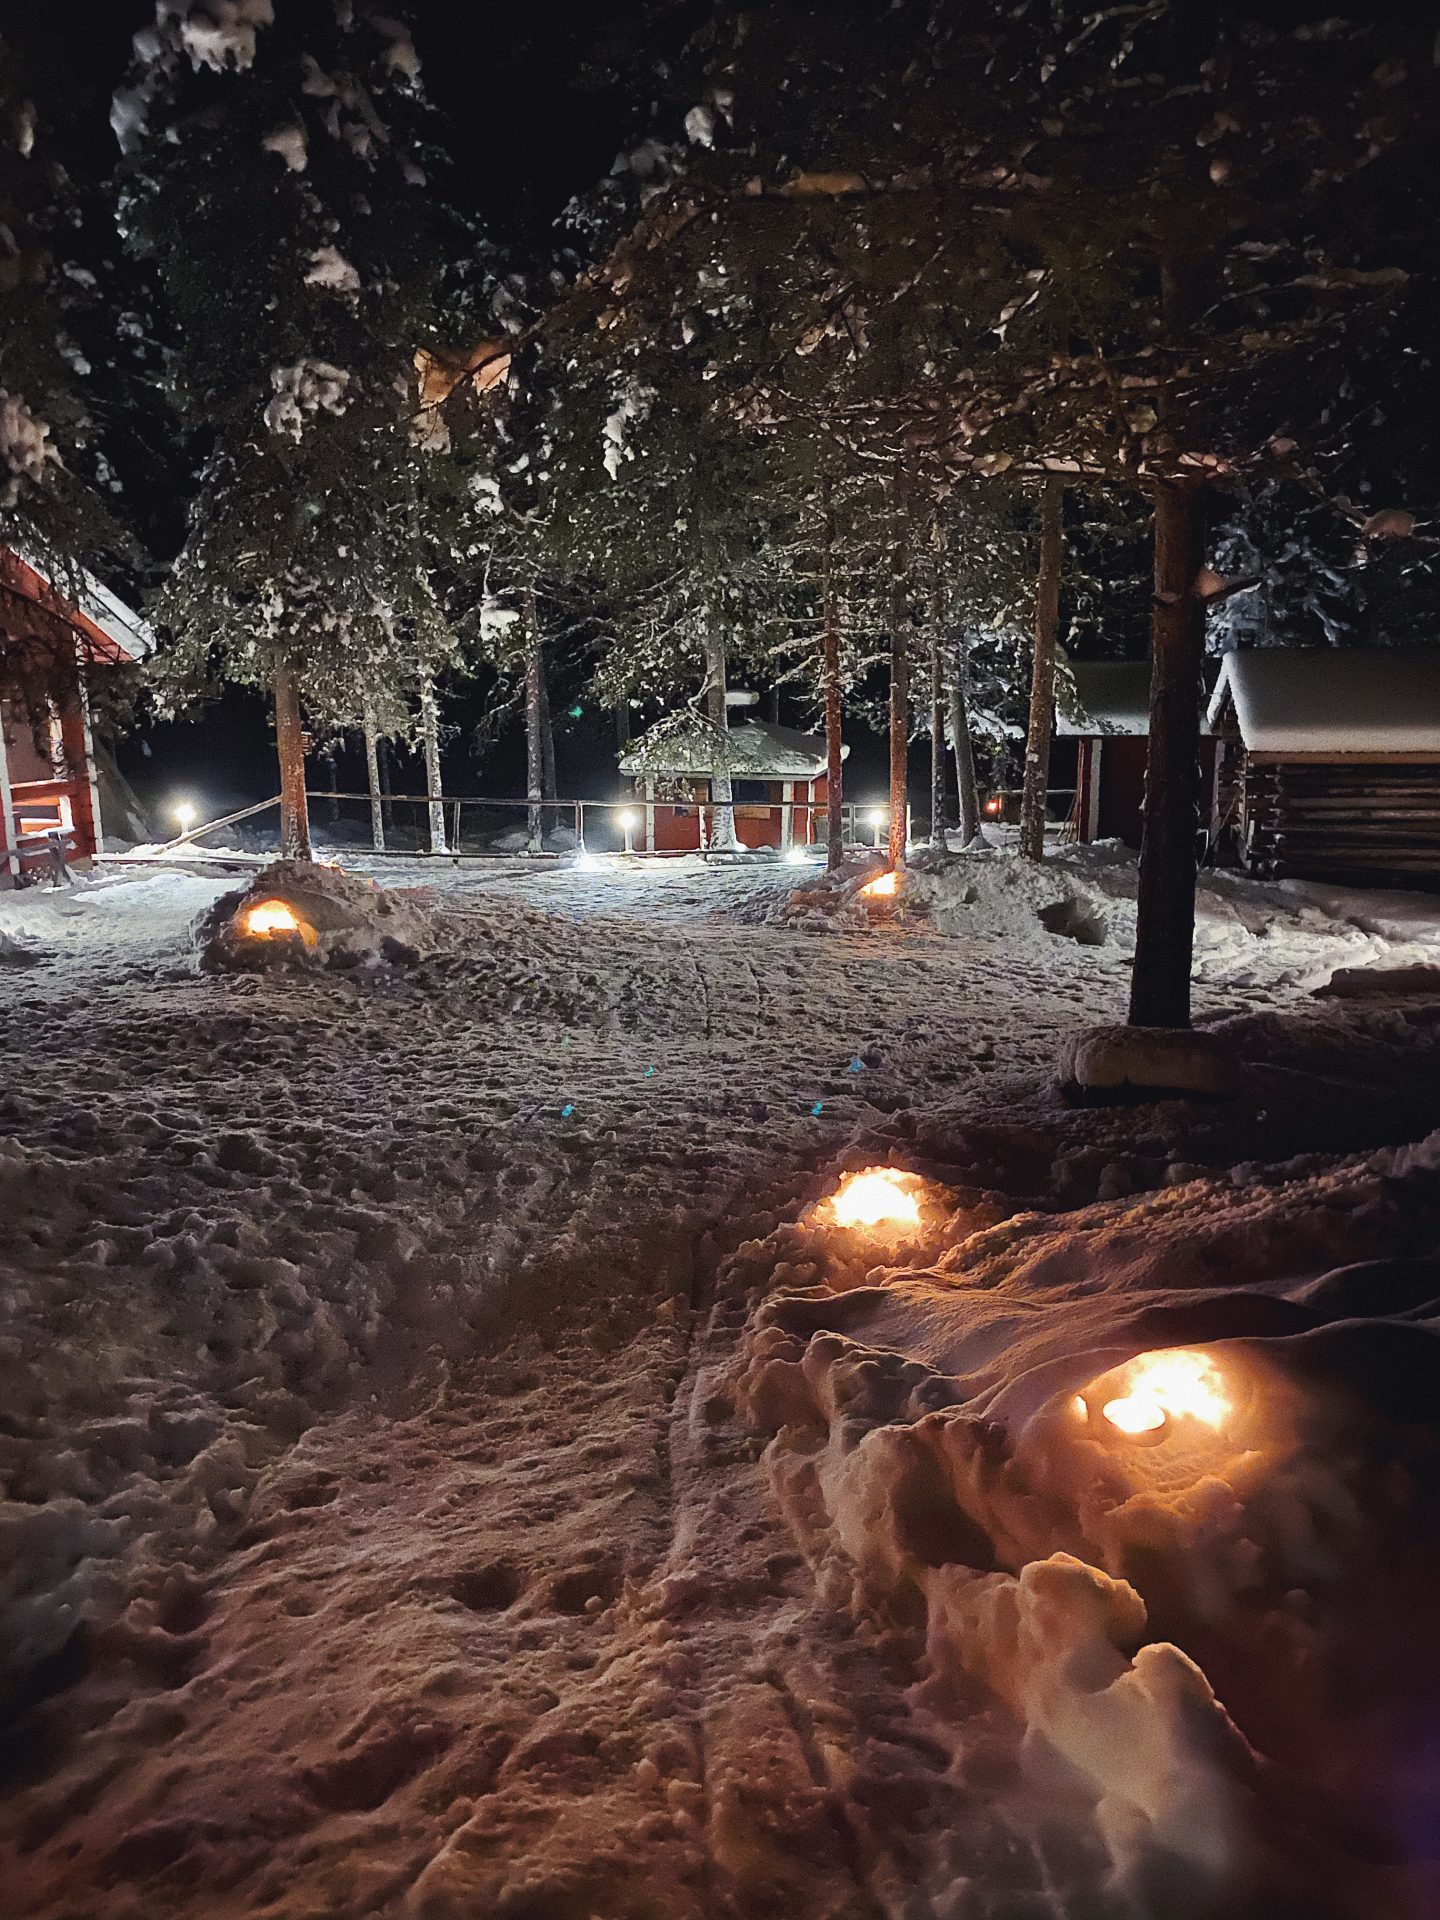 Travel guide and travel diary to Lapland, Finland and Rovaniemi, Finland with Safartica Ice Floating